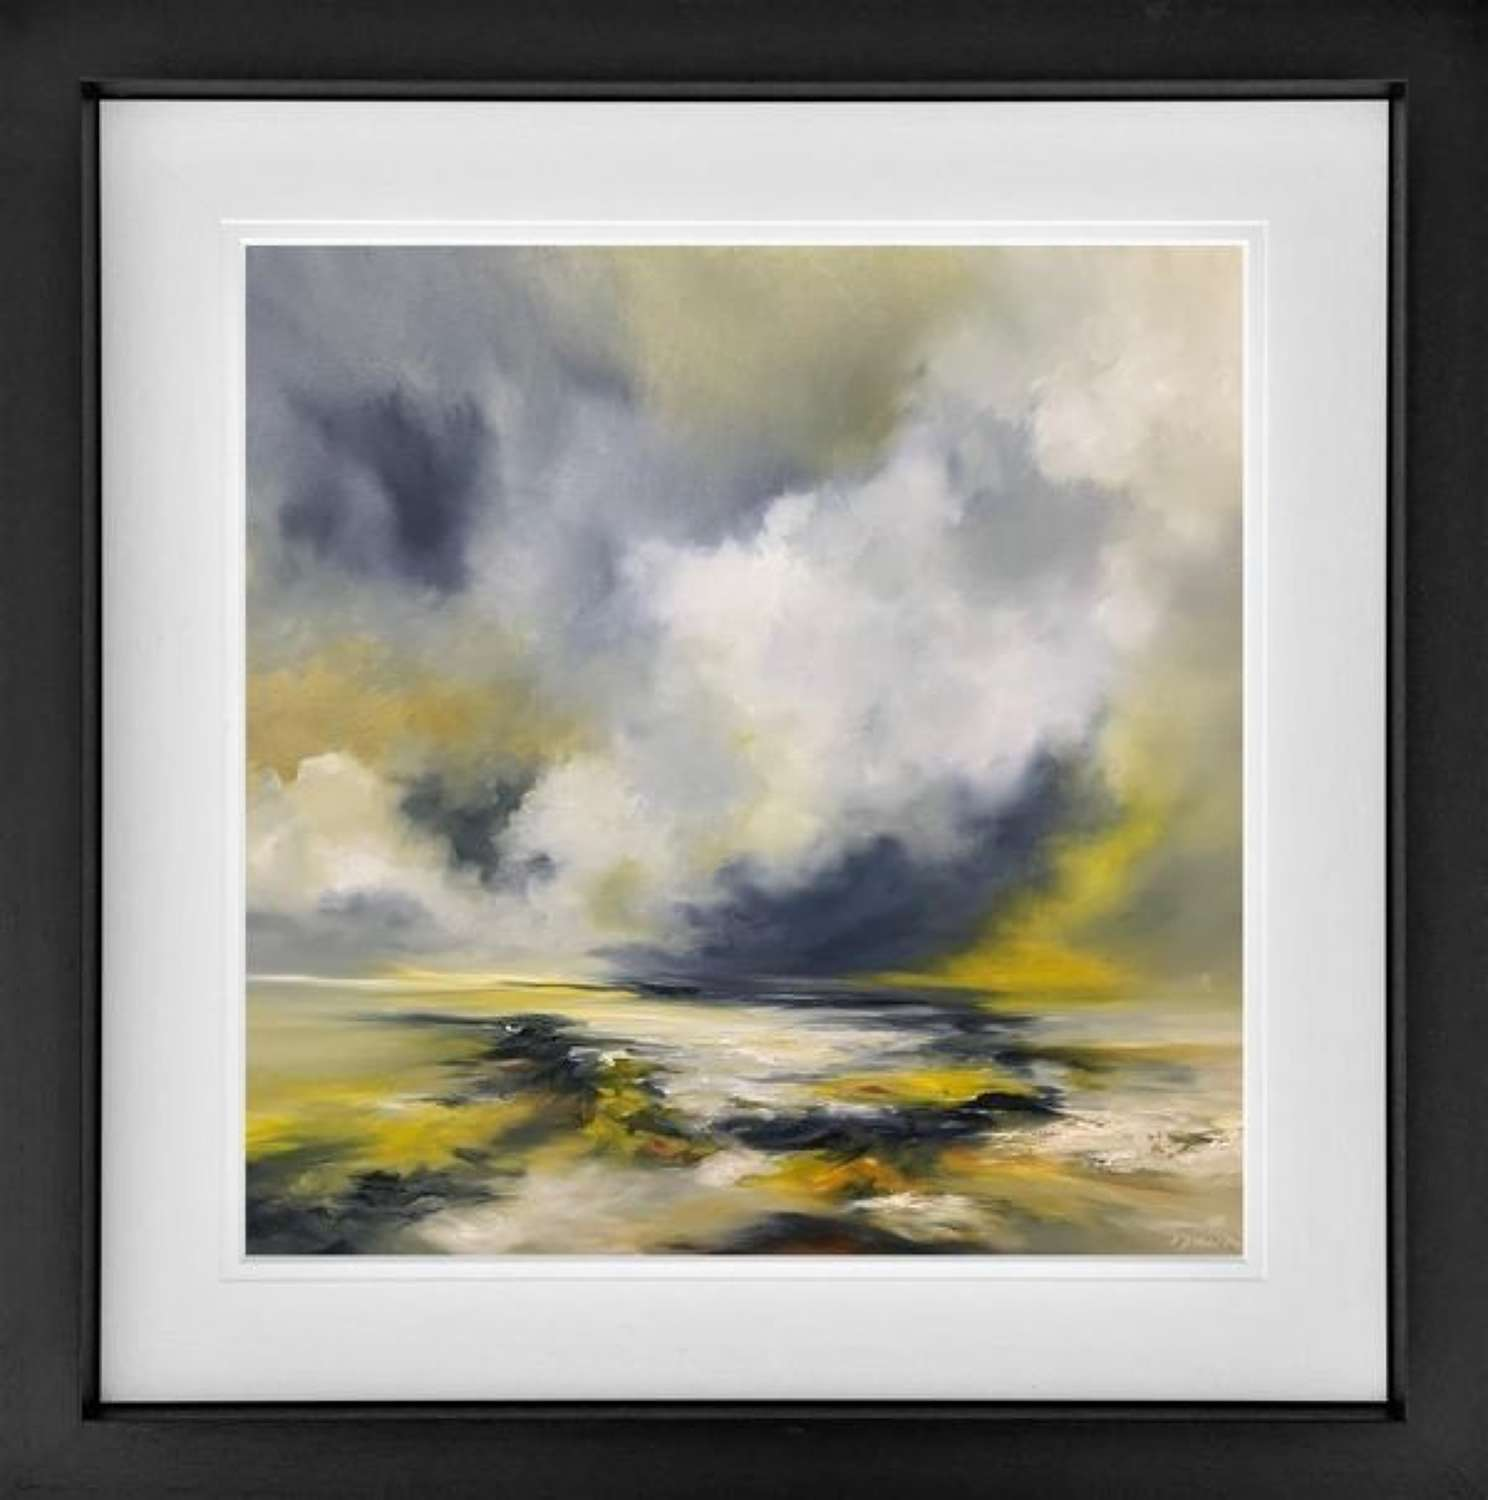 There Will Be Light - Framed Art Print By Alison Johnson